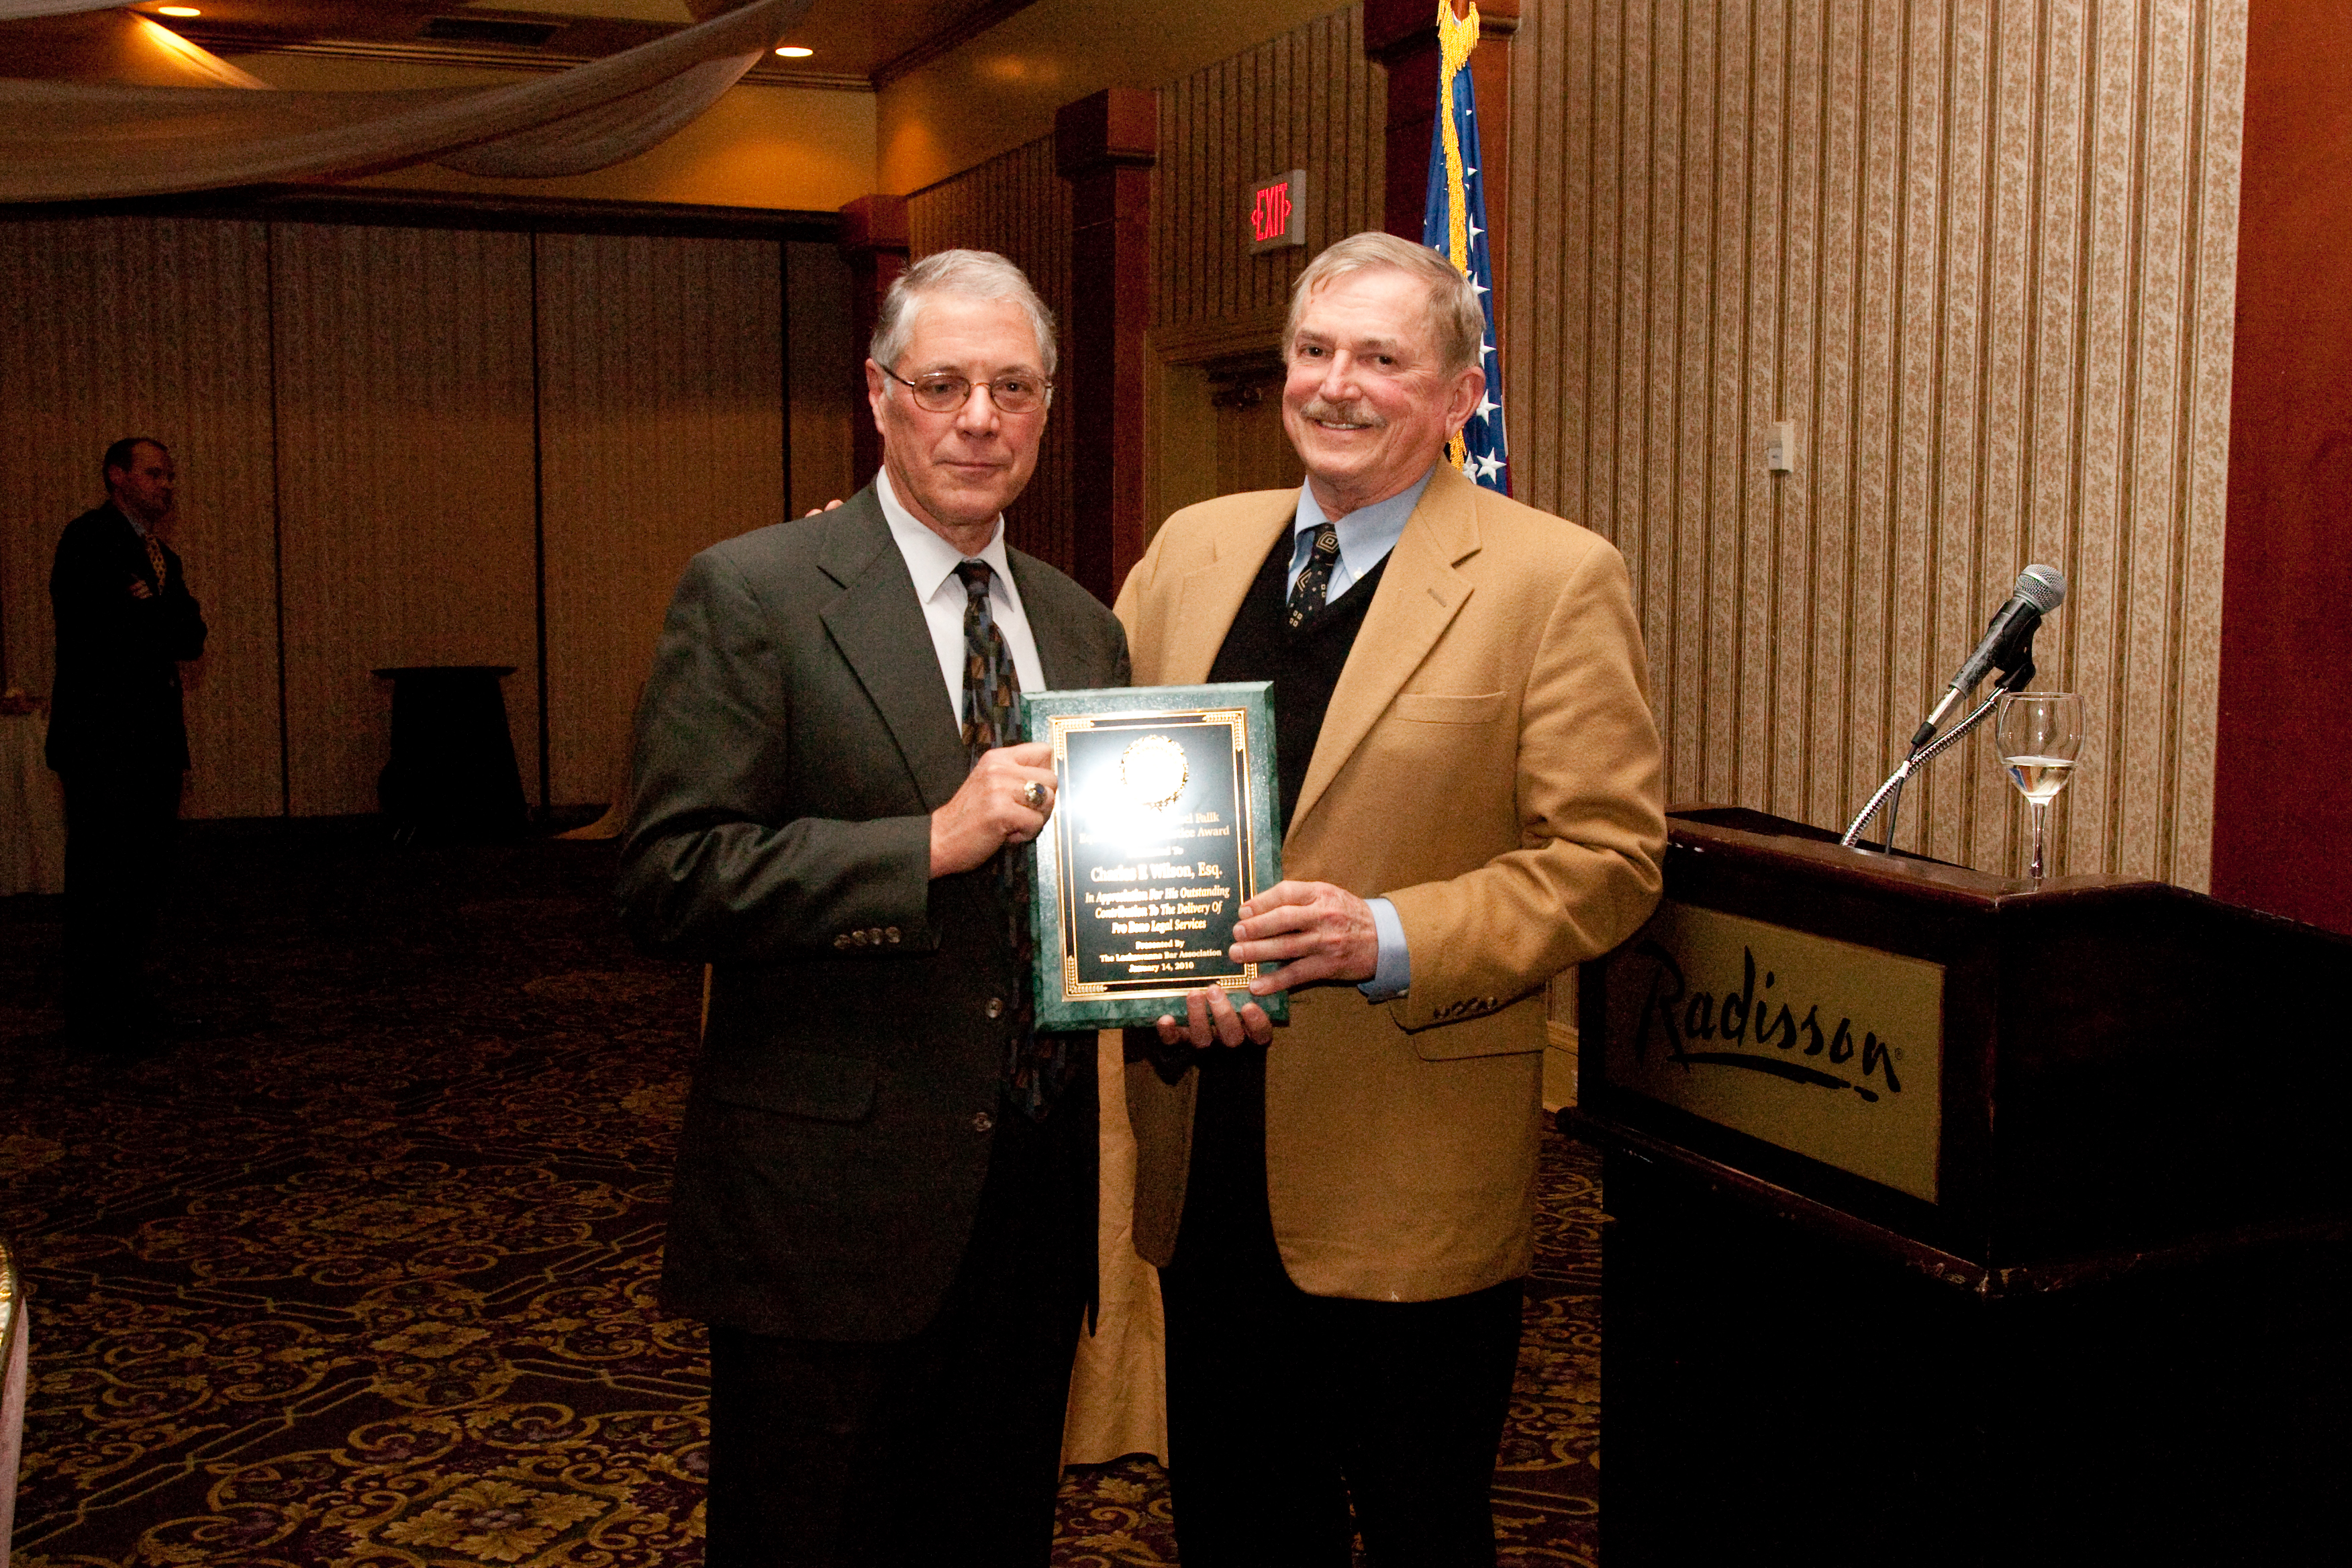 Charles F. Wilson, Esq. receiving the Samuel Fallk award from Hon. Chester T. Harhut, president judge of the Lackawanna County Court of Common Pleas